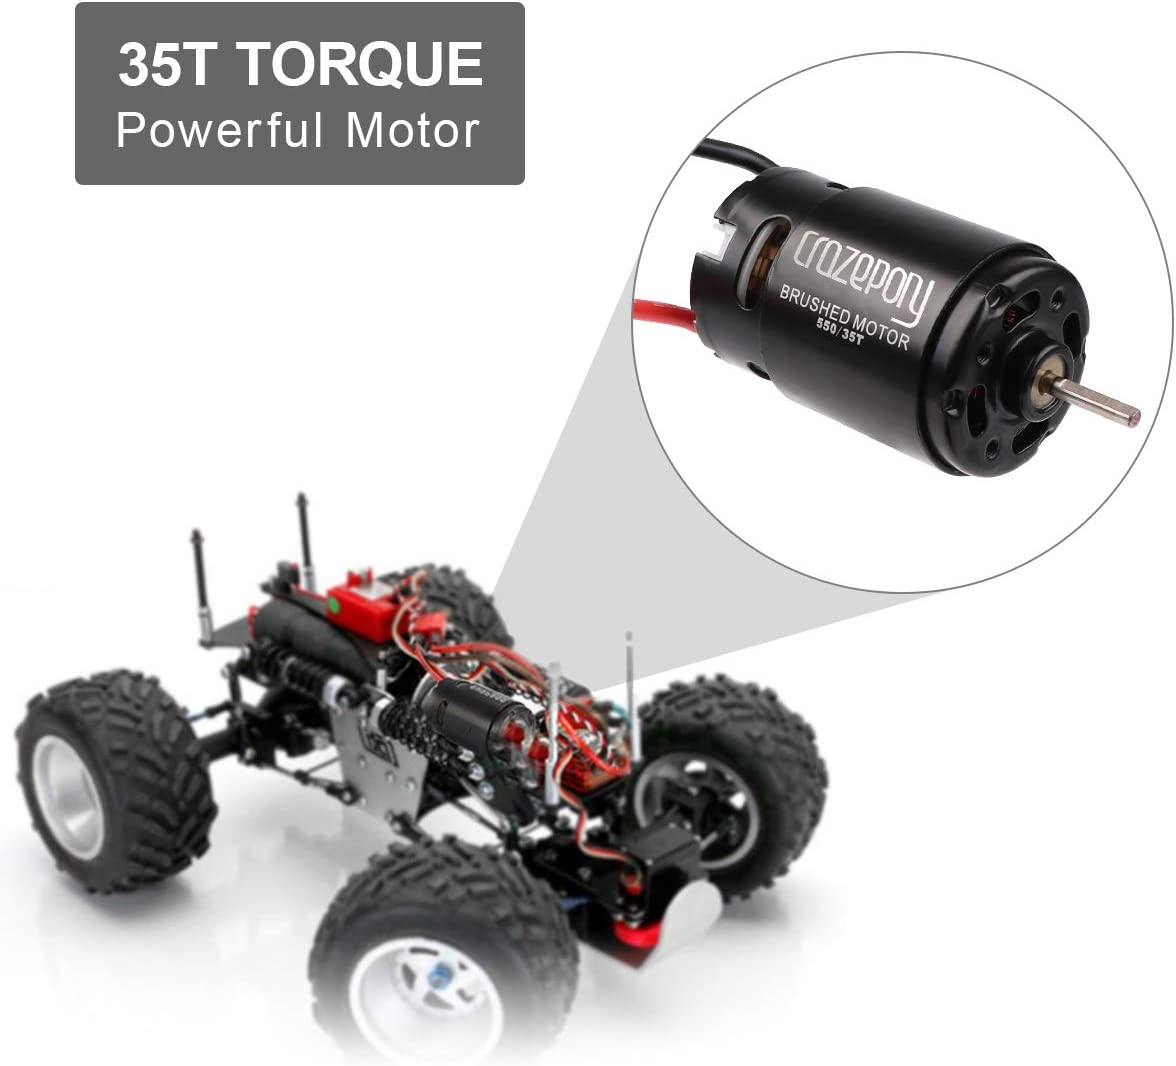 550 12T Brushed Motor 21000PRM 3.175mm Shaft for 1//10 RC Car HSP HPI Wltoys Kyosho Off-Road Rock Crawler Climbing RC Car 1S-2S Lipo Battery